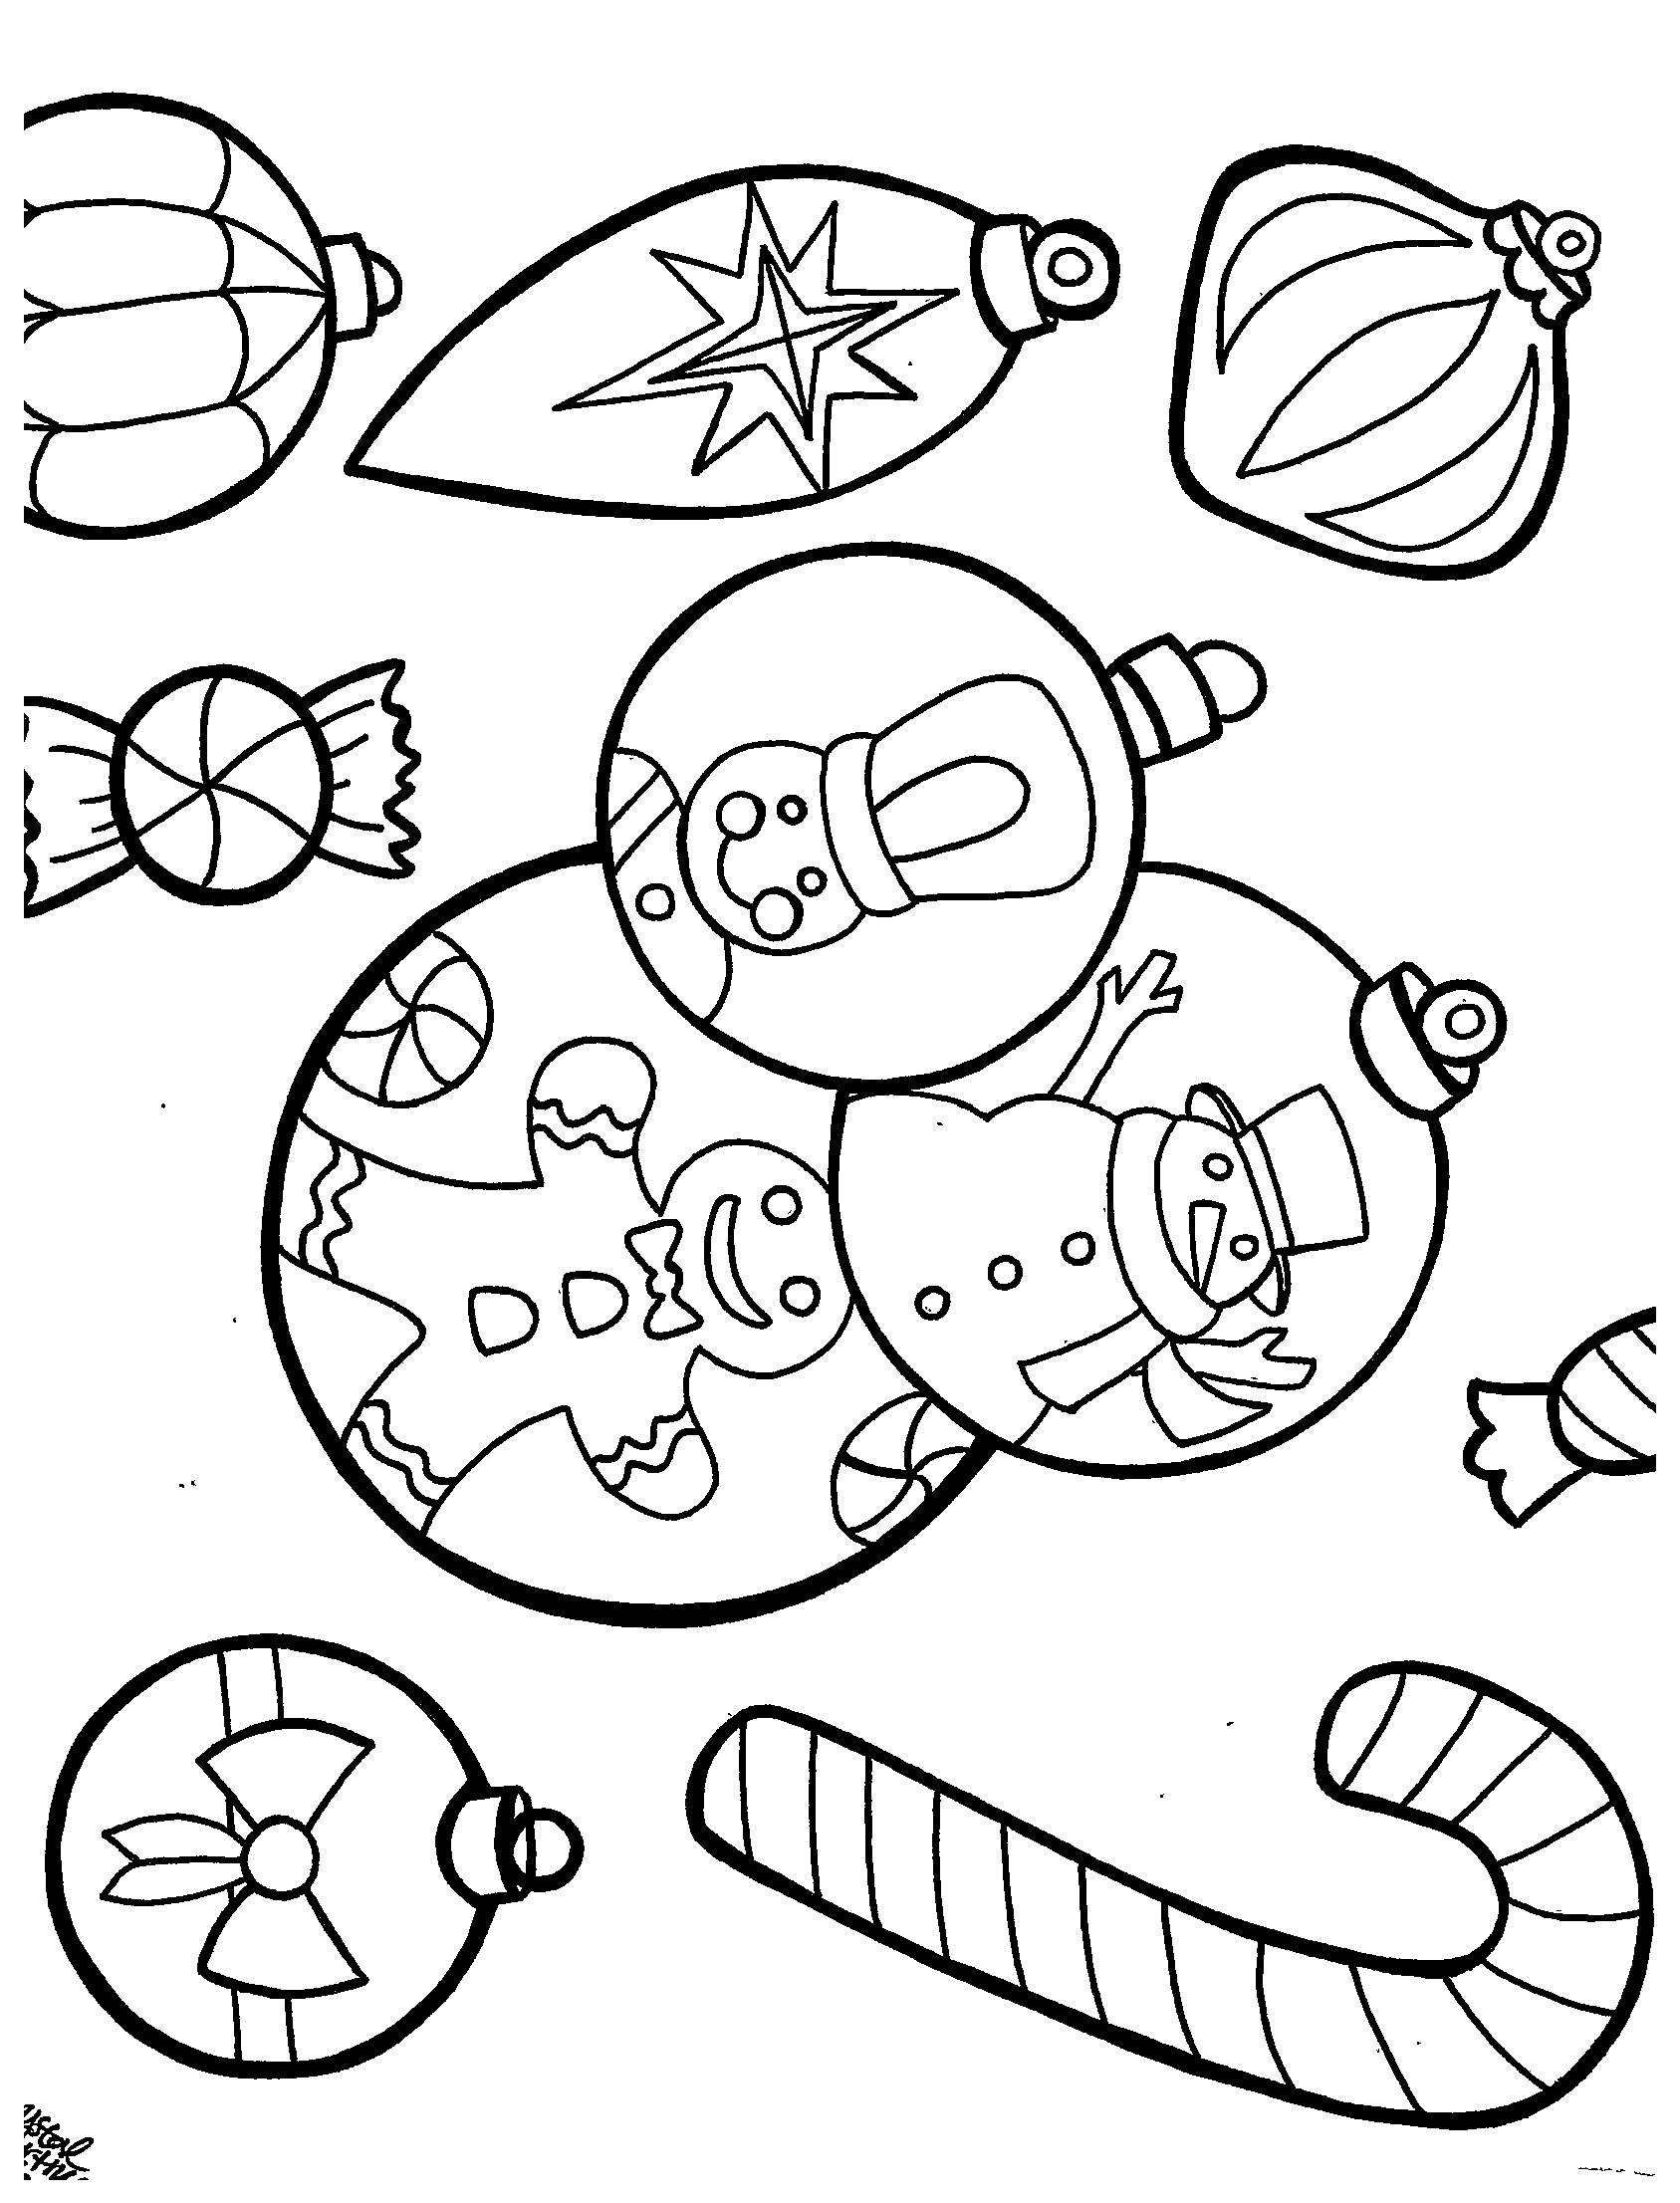 Holiday coloring page by Crystal Martinez